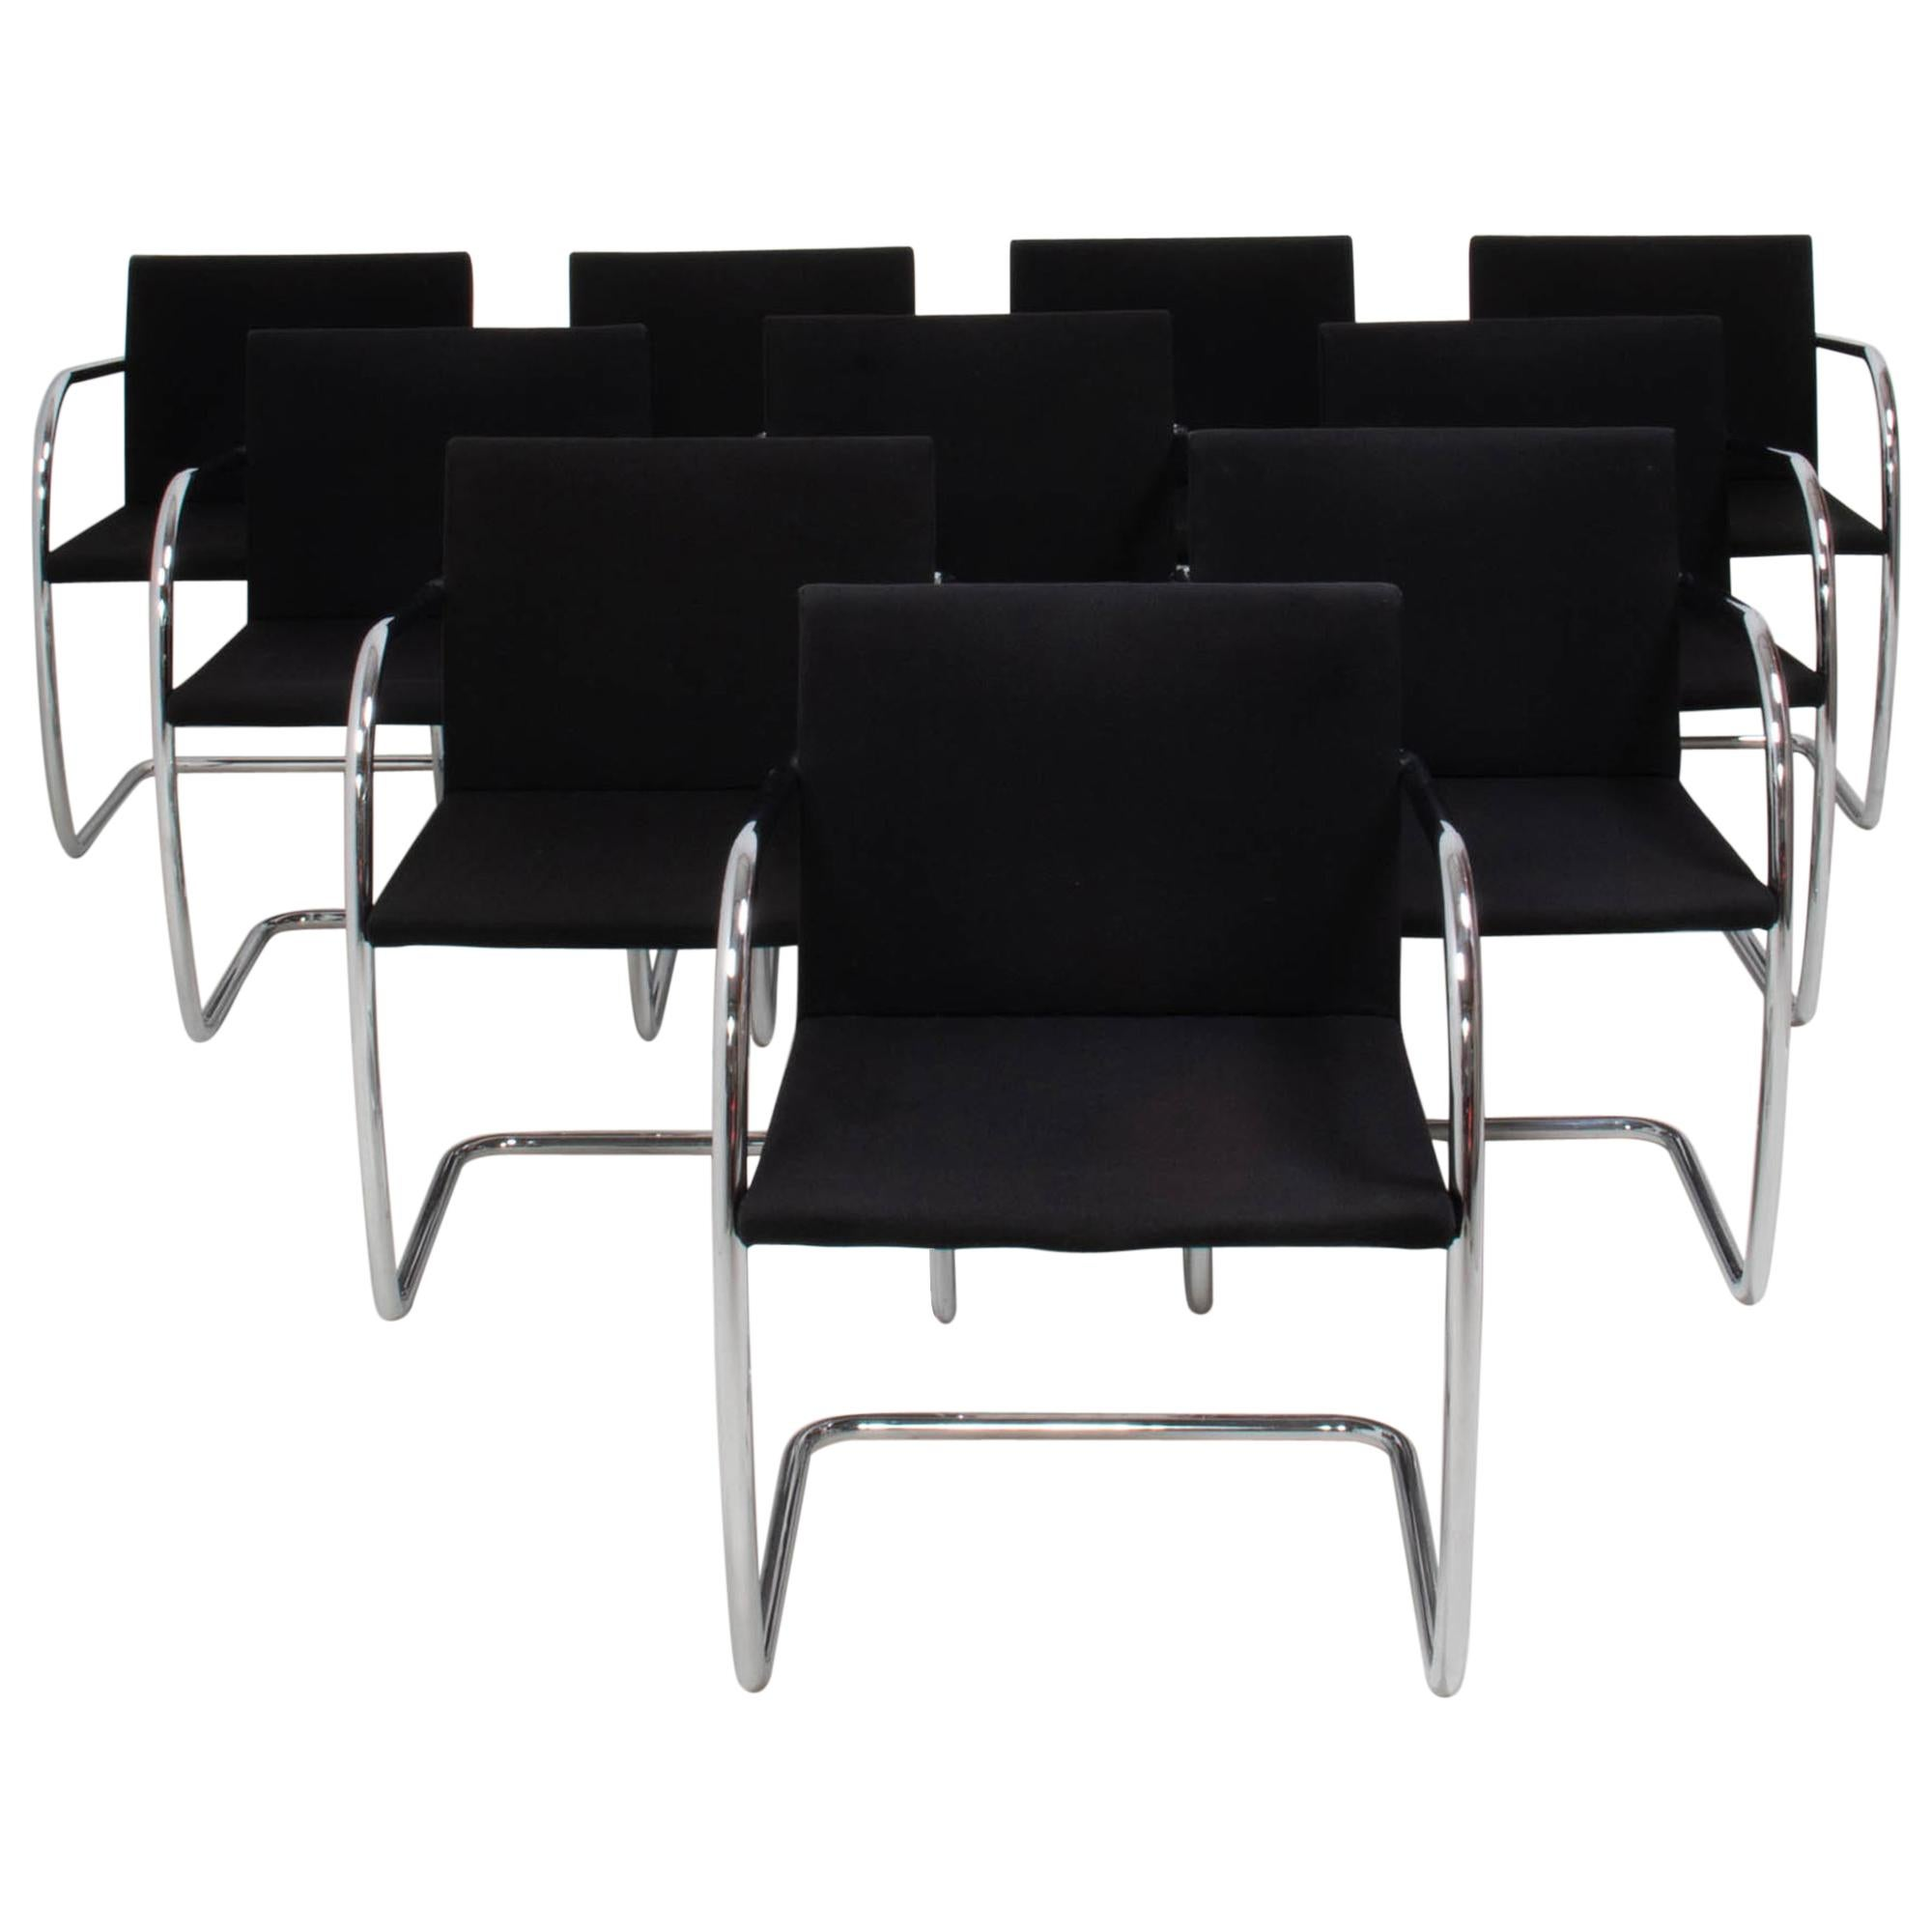 Brno Chair - Tubular - 245